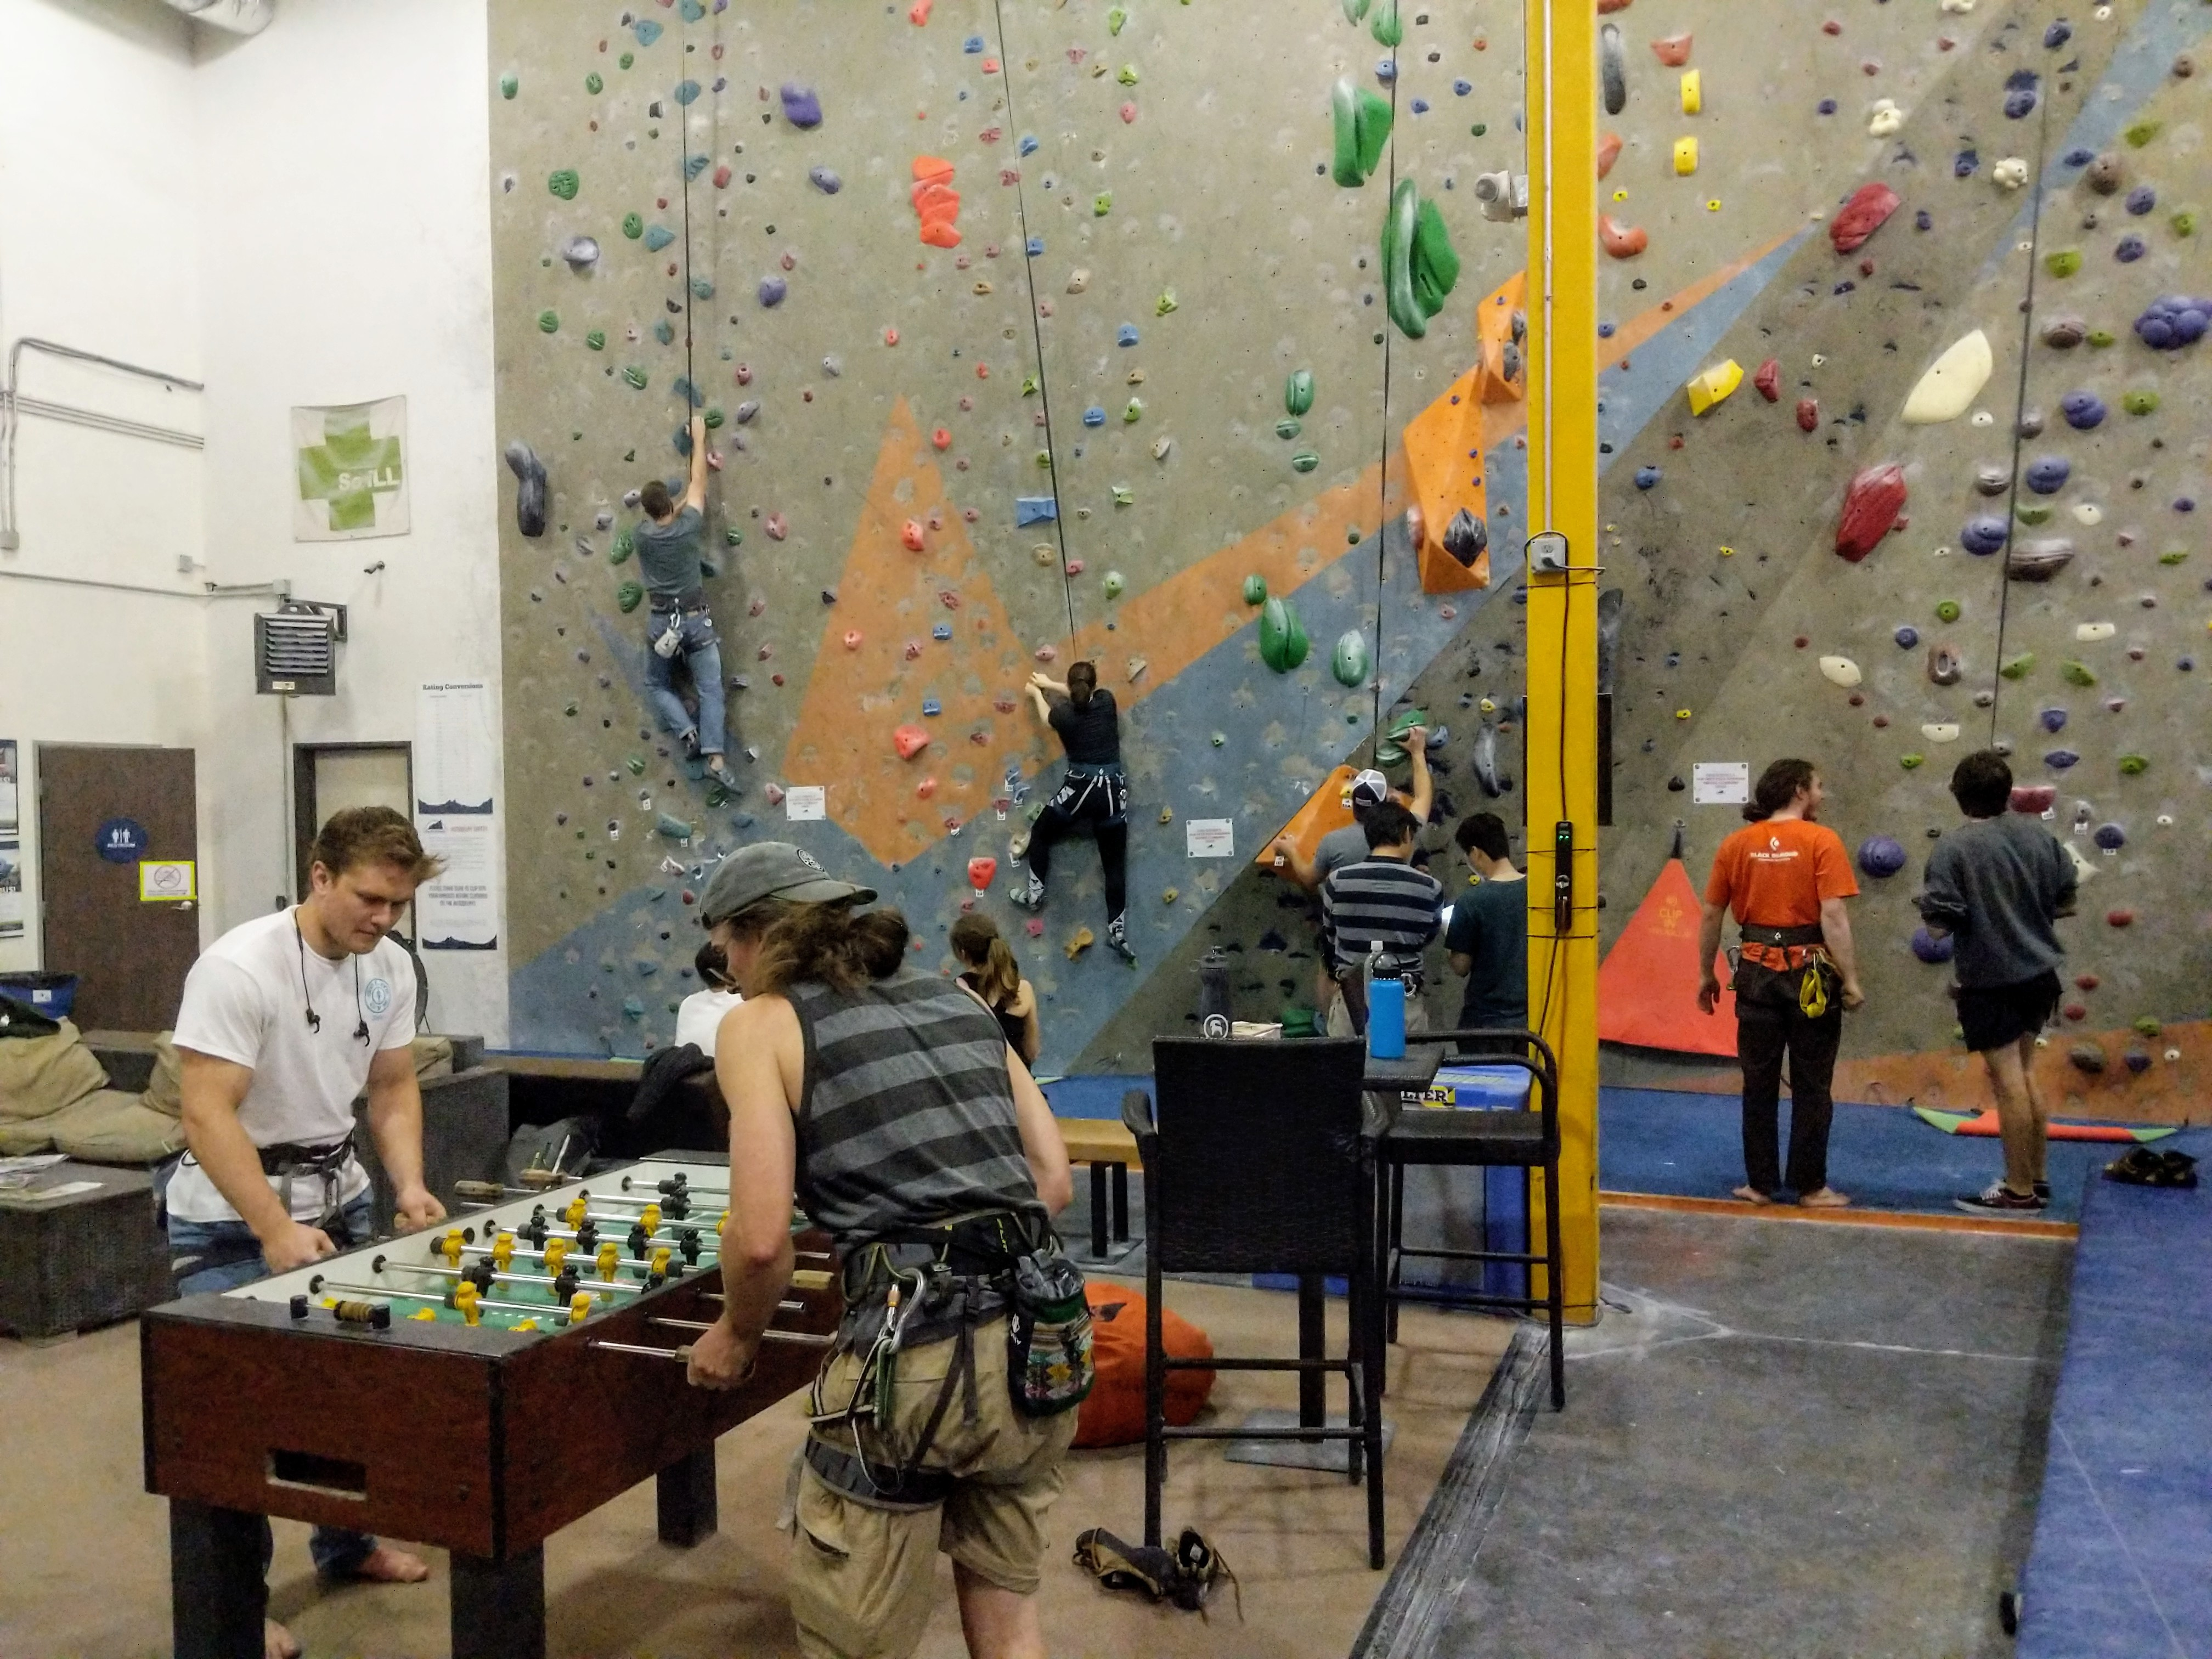 Wide shot of the gym with climber climbing and people playing foosball